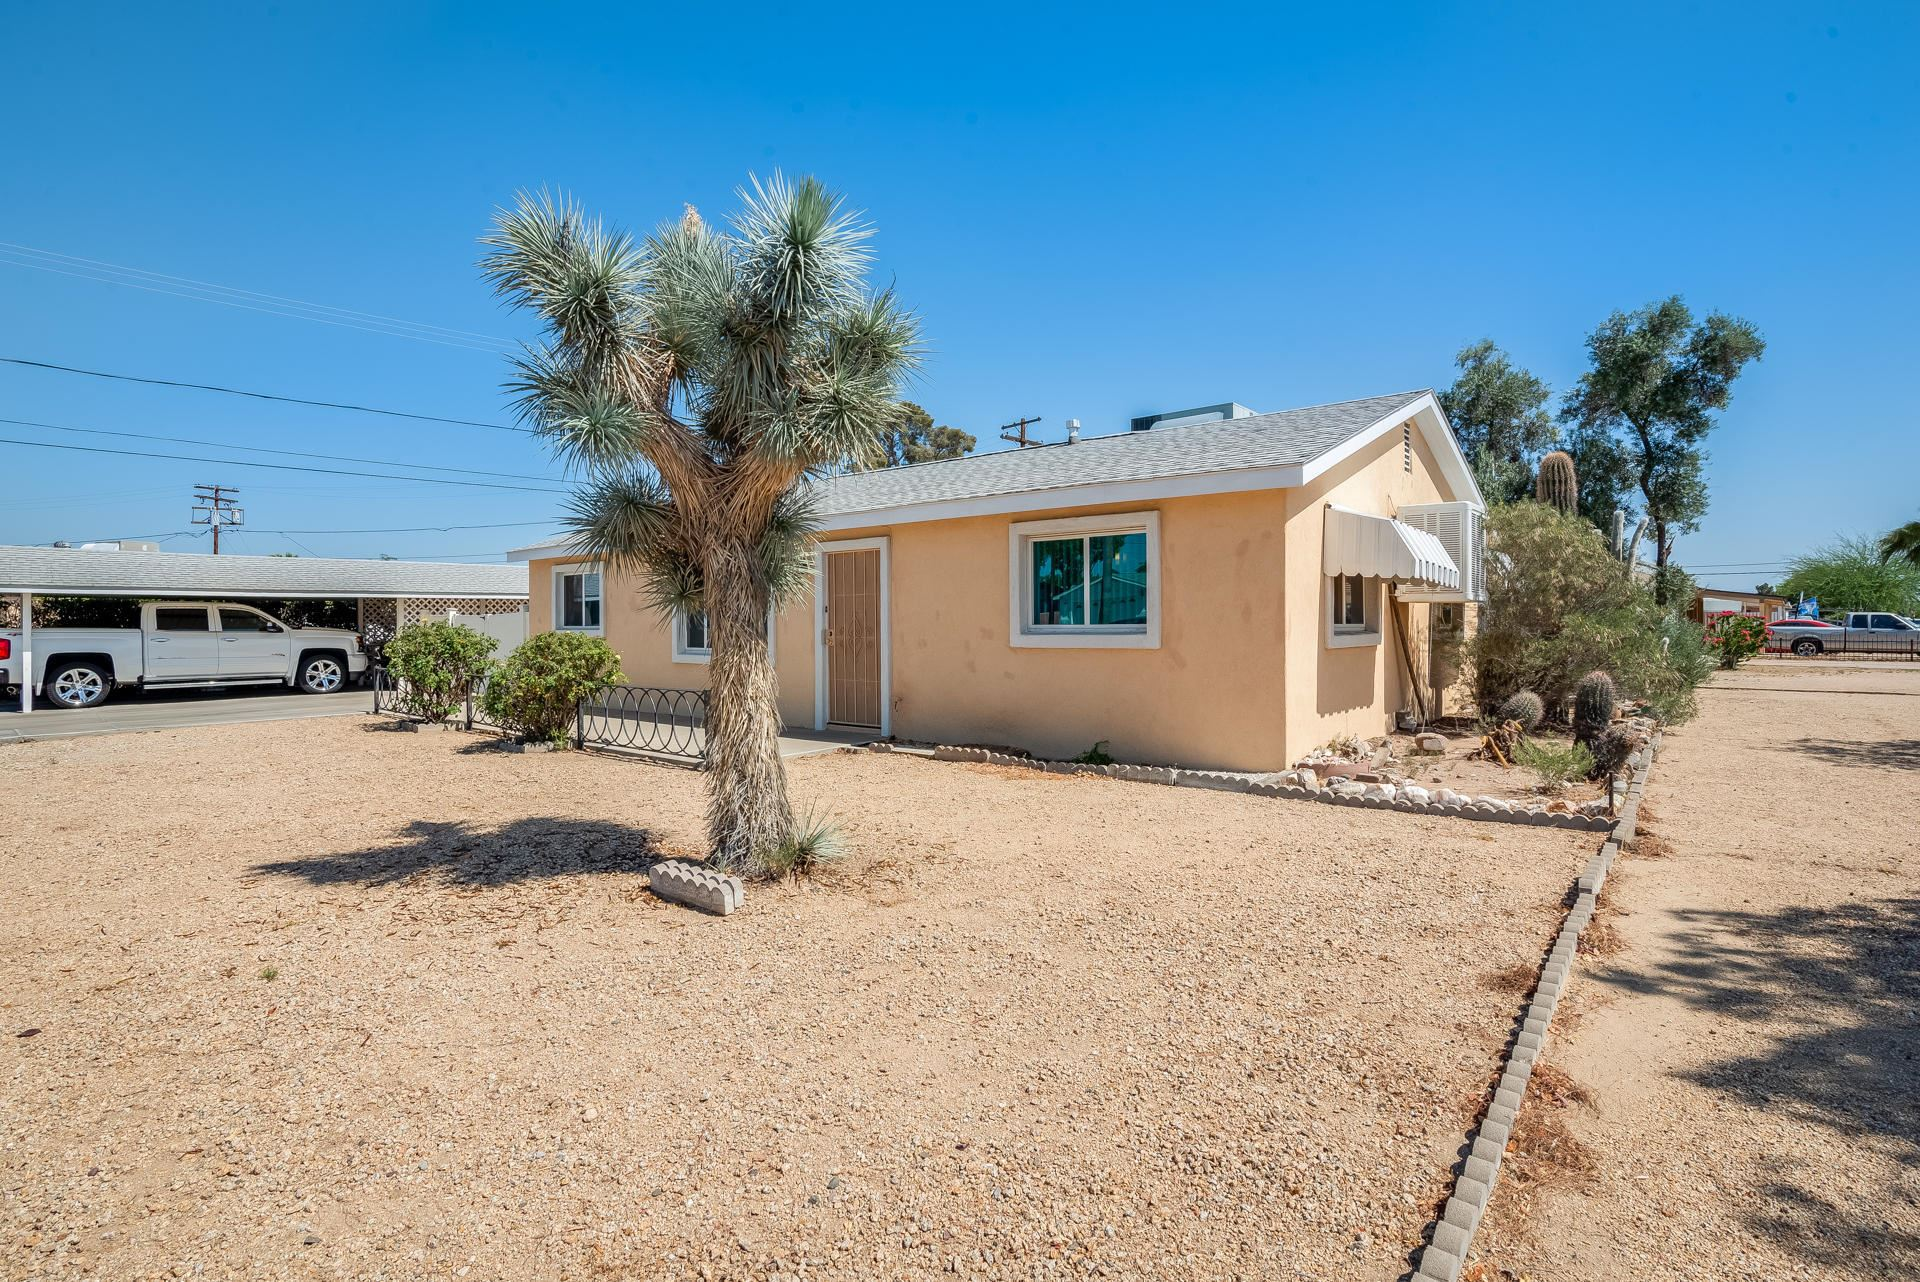 Photo of 11433 N 113TH Drive, Youngtown, AZ 85363 (MLS # 6236621)